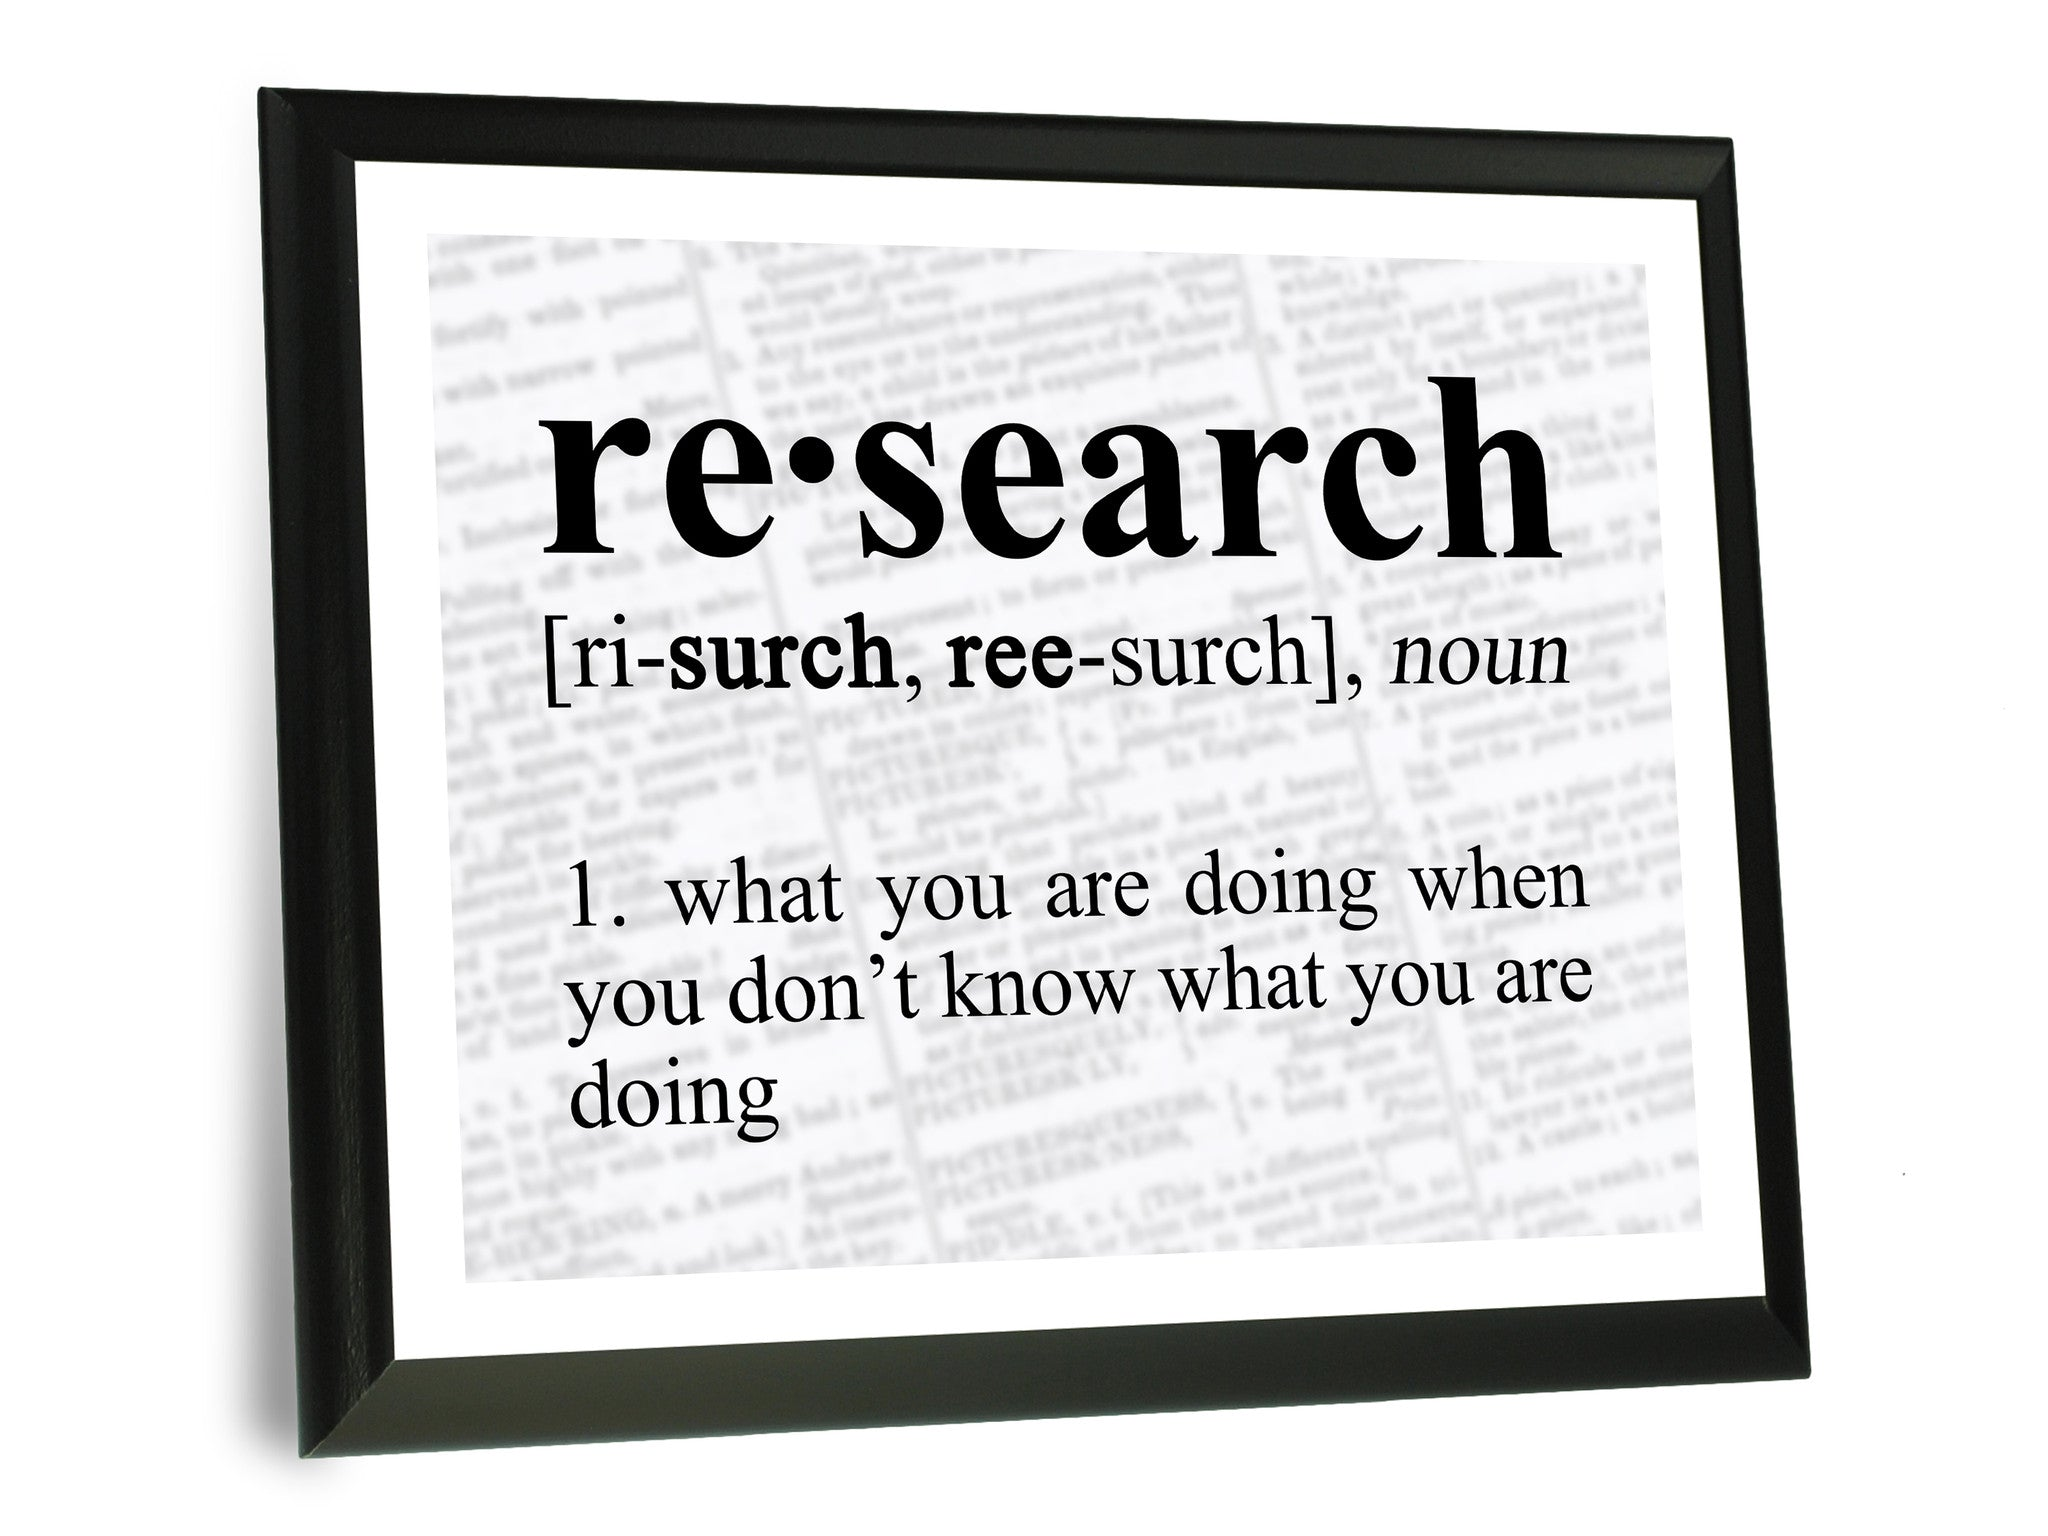 research definition funny typography wall plaque 9x12 neurons not included